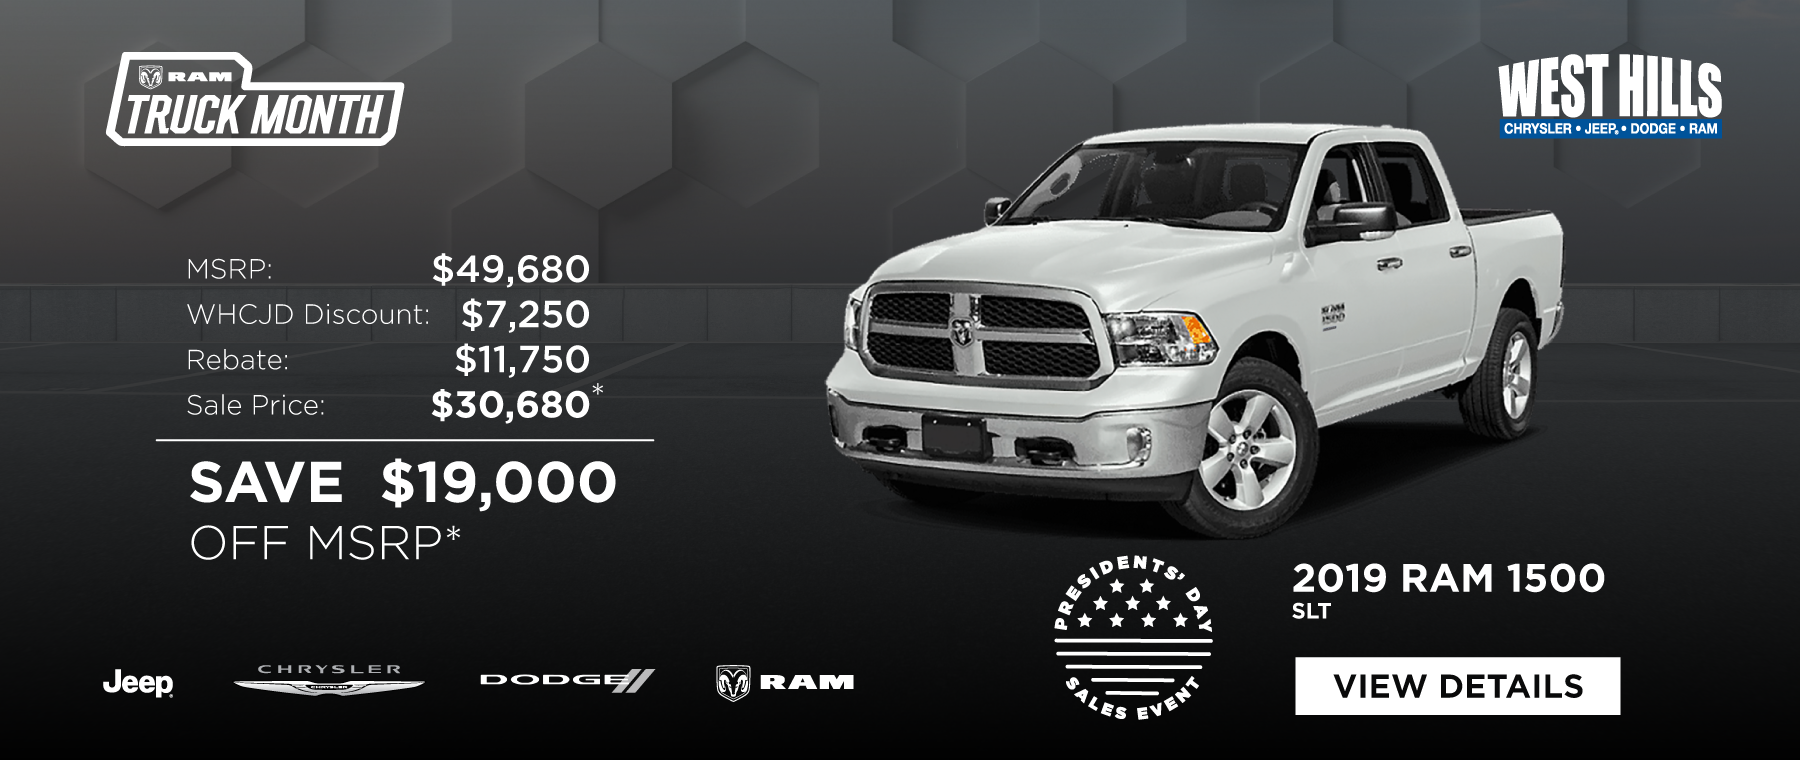 2019 Ram 1500 Classic SLT (featured vehicle) MSRP: $49,680 SAVE $19,000 OFF MSRP*  *Offer valid on 2019 Ram 1500 Classic SLT. VIN: 1C6RR7TT1KS569689. MSRP $49,680. WHCJDR Discount $7,250. Rebate of $11,750. Sale Price of $30,680. Based on approval of program ID: 70CK1, WECK5, 43CKE1, 43CKE2, 43CKE3, 43CKE4, 45CKB1, 45CKB2, 45CKB3, WECKA1, WECKM, WECKA, 39CKM4. Subject to credit approval. Down payment and monthly payment may vary. Excludes taxes, tags, registration and title, insurance and dealer charges. A negotiable dealer documentary service fee of up to $150 may be added to the sale price or capitalized cost. Exp. 2/28/2019.